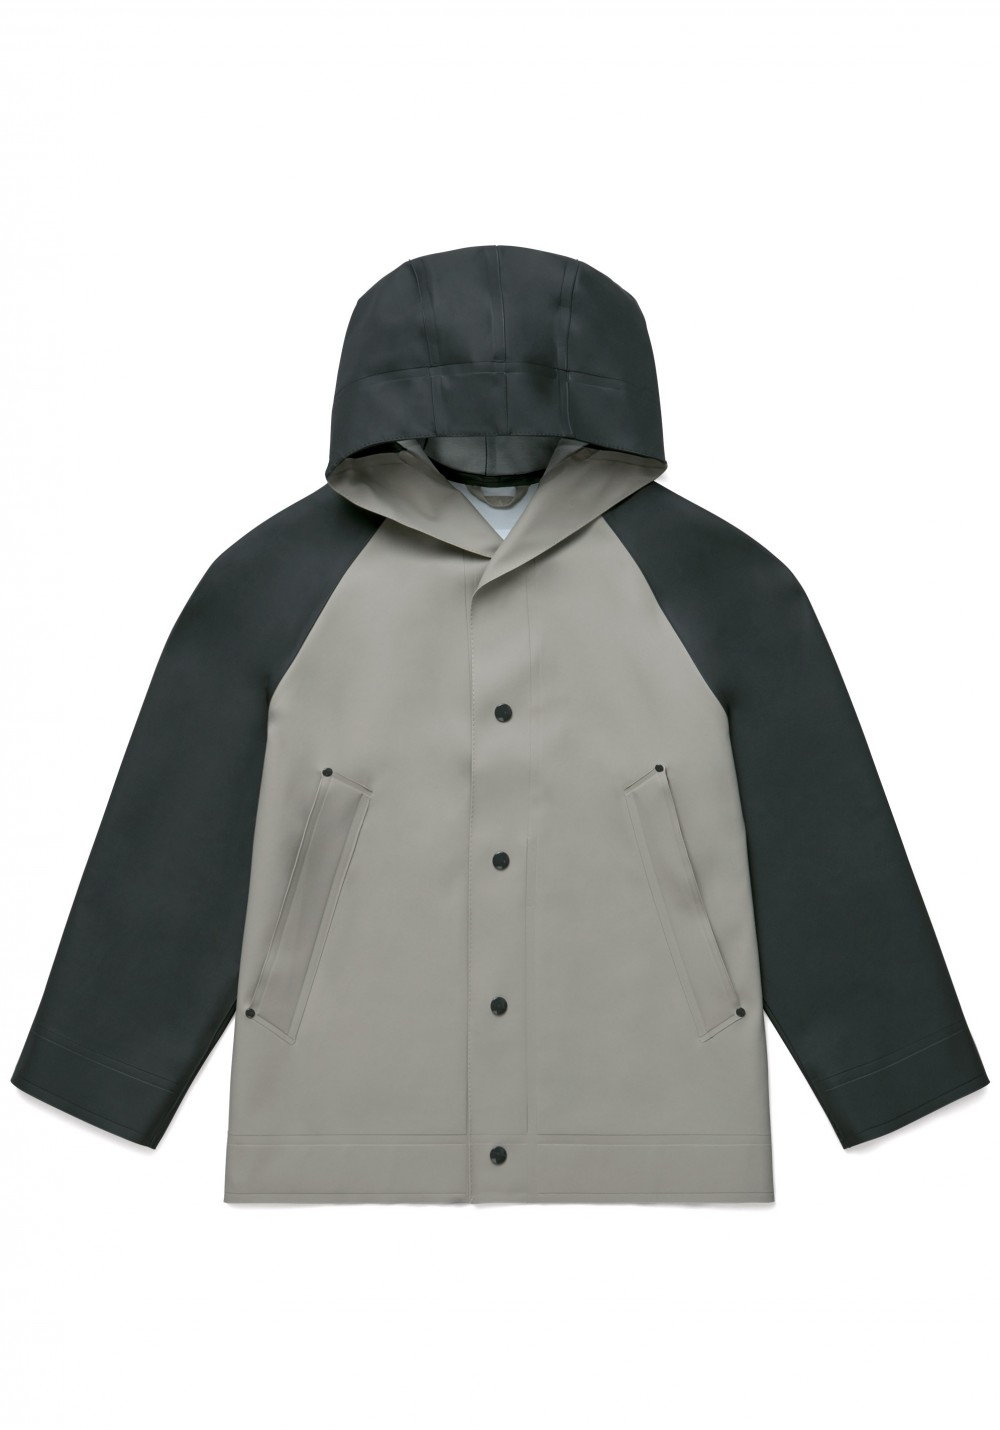 02 Stutterheim for Marni SS18_Man_RaglanJacket_BlackPotato_Product